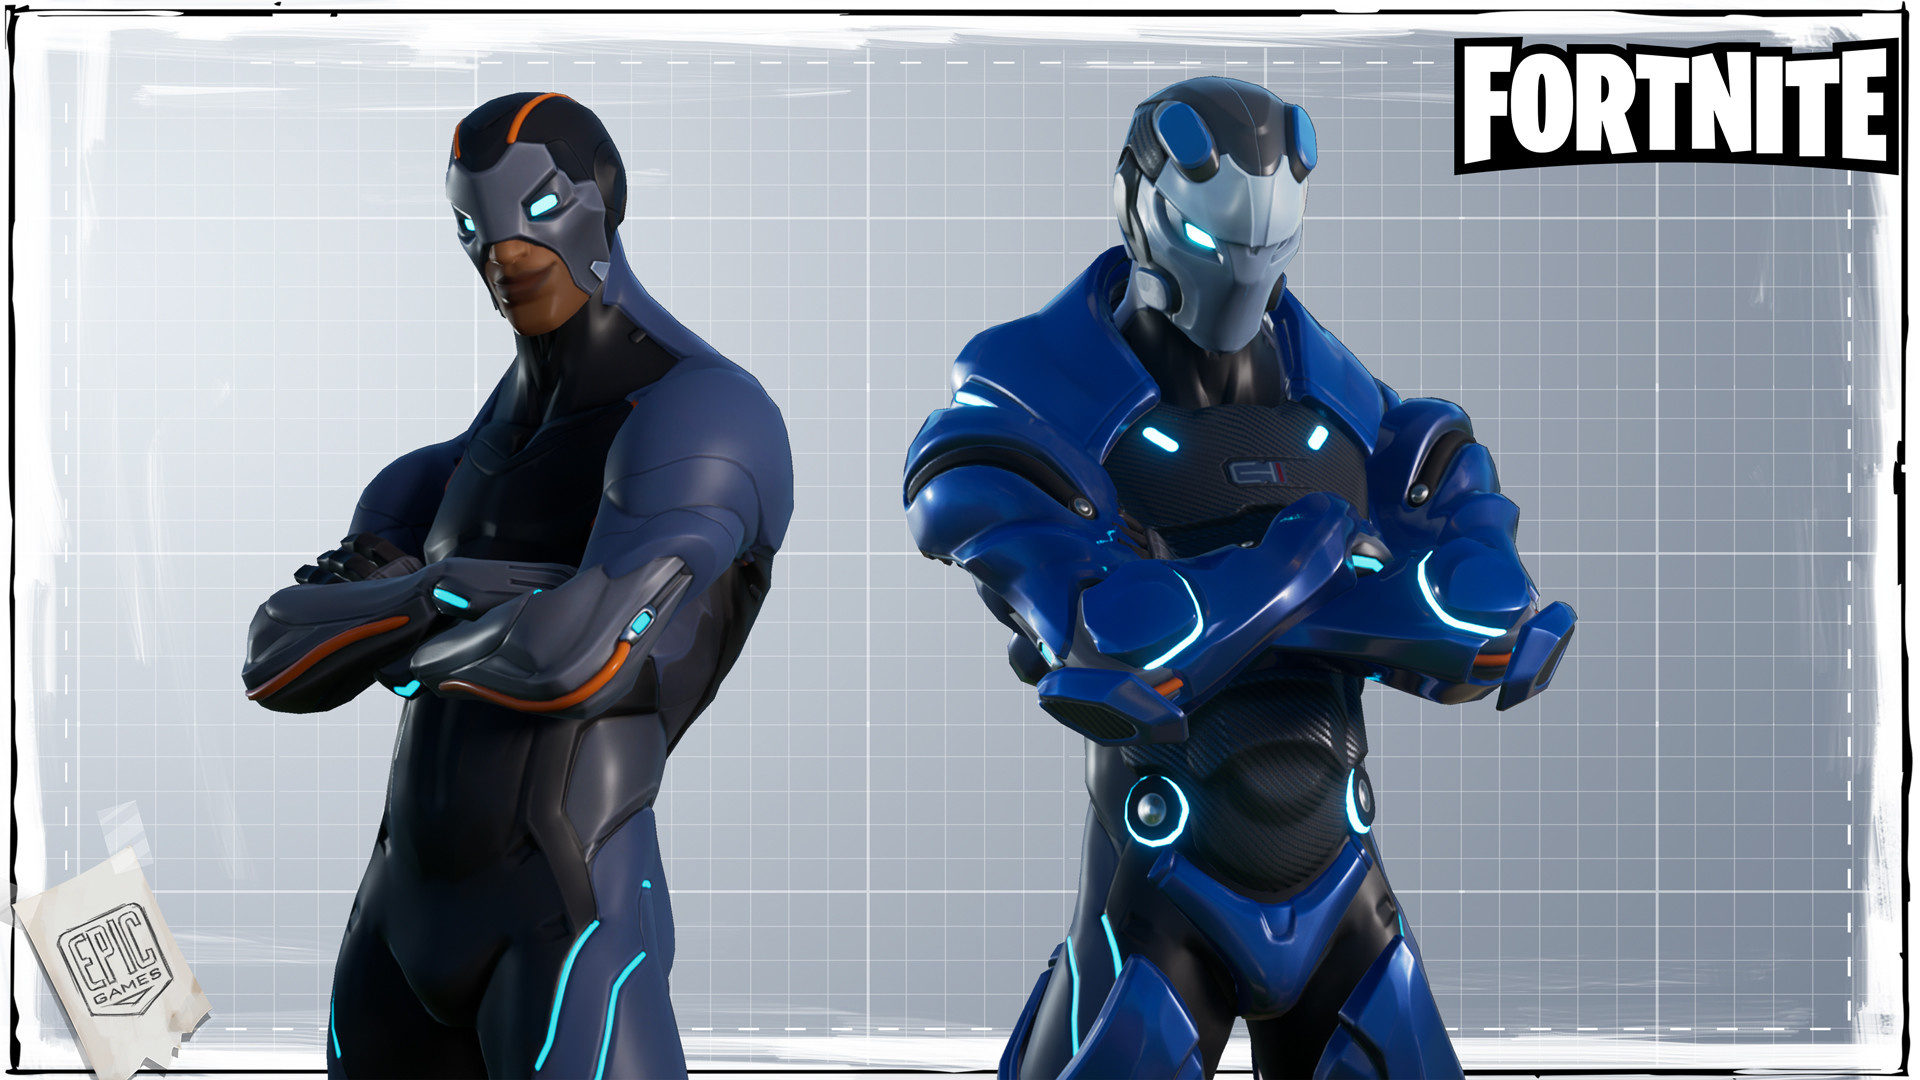 Fortnite Season 5 Faq Release Date Battle Pass Price New Skins